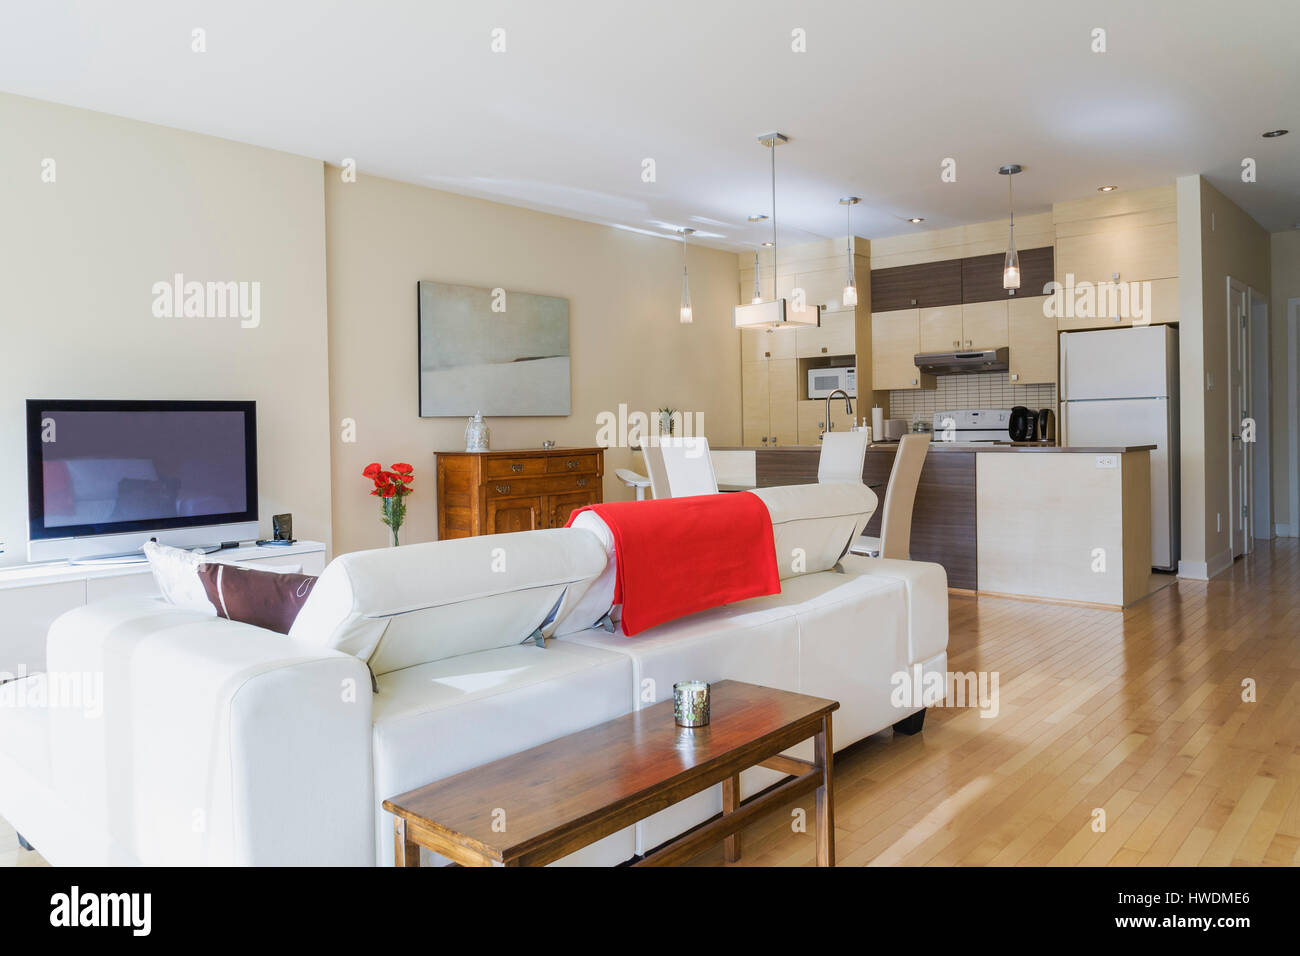 White leather sofa in living room and kitchen diner in renovated